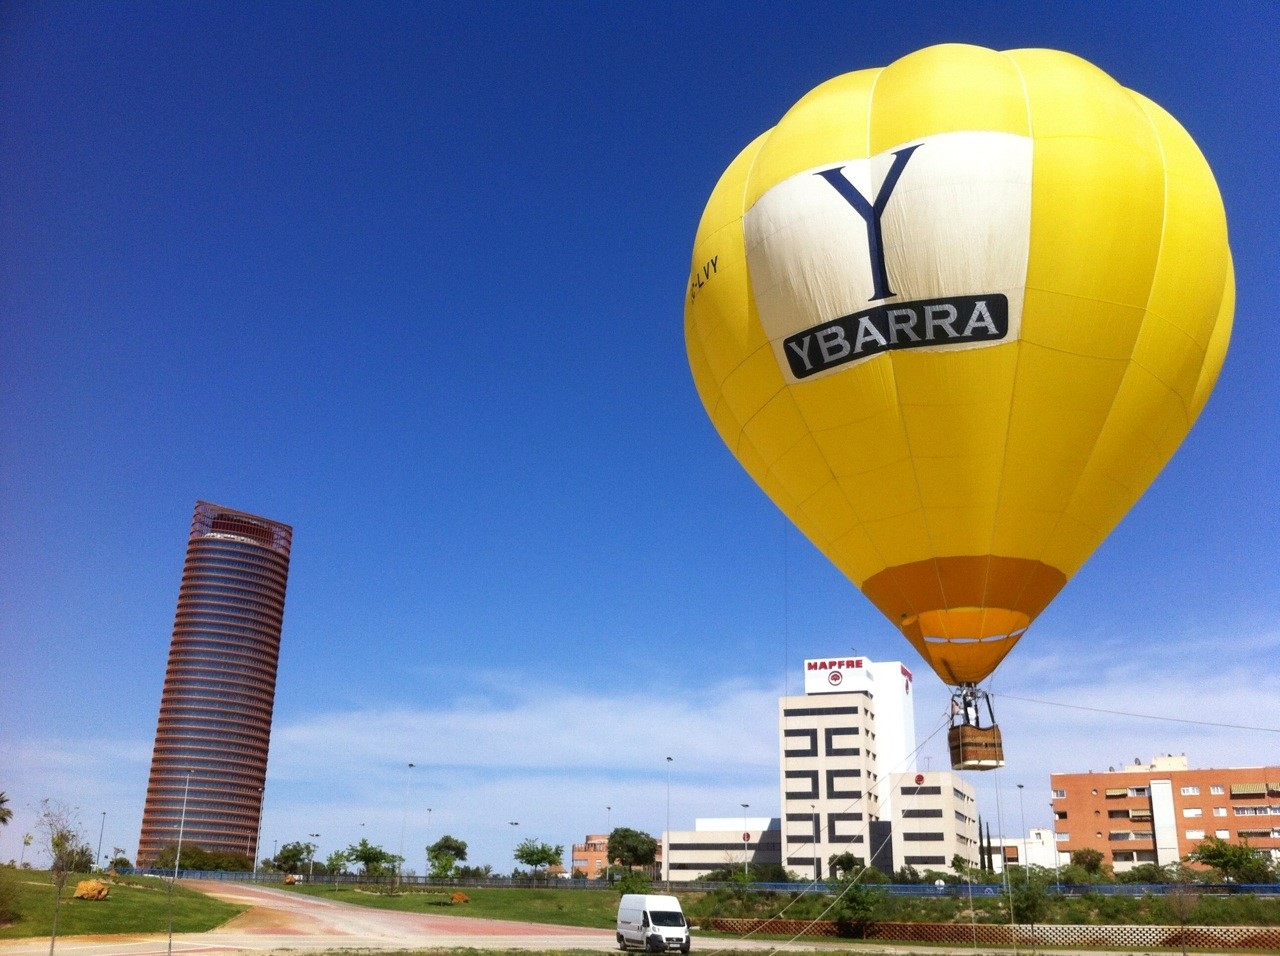 Ybarra se suma al balloon marketing